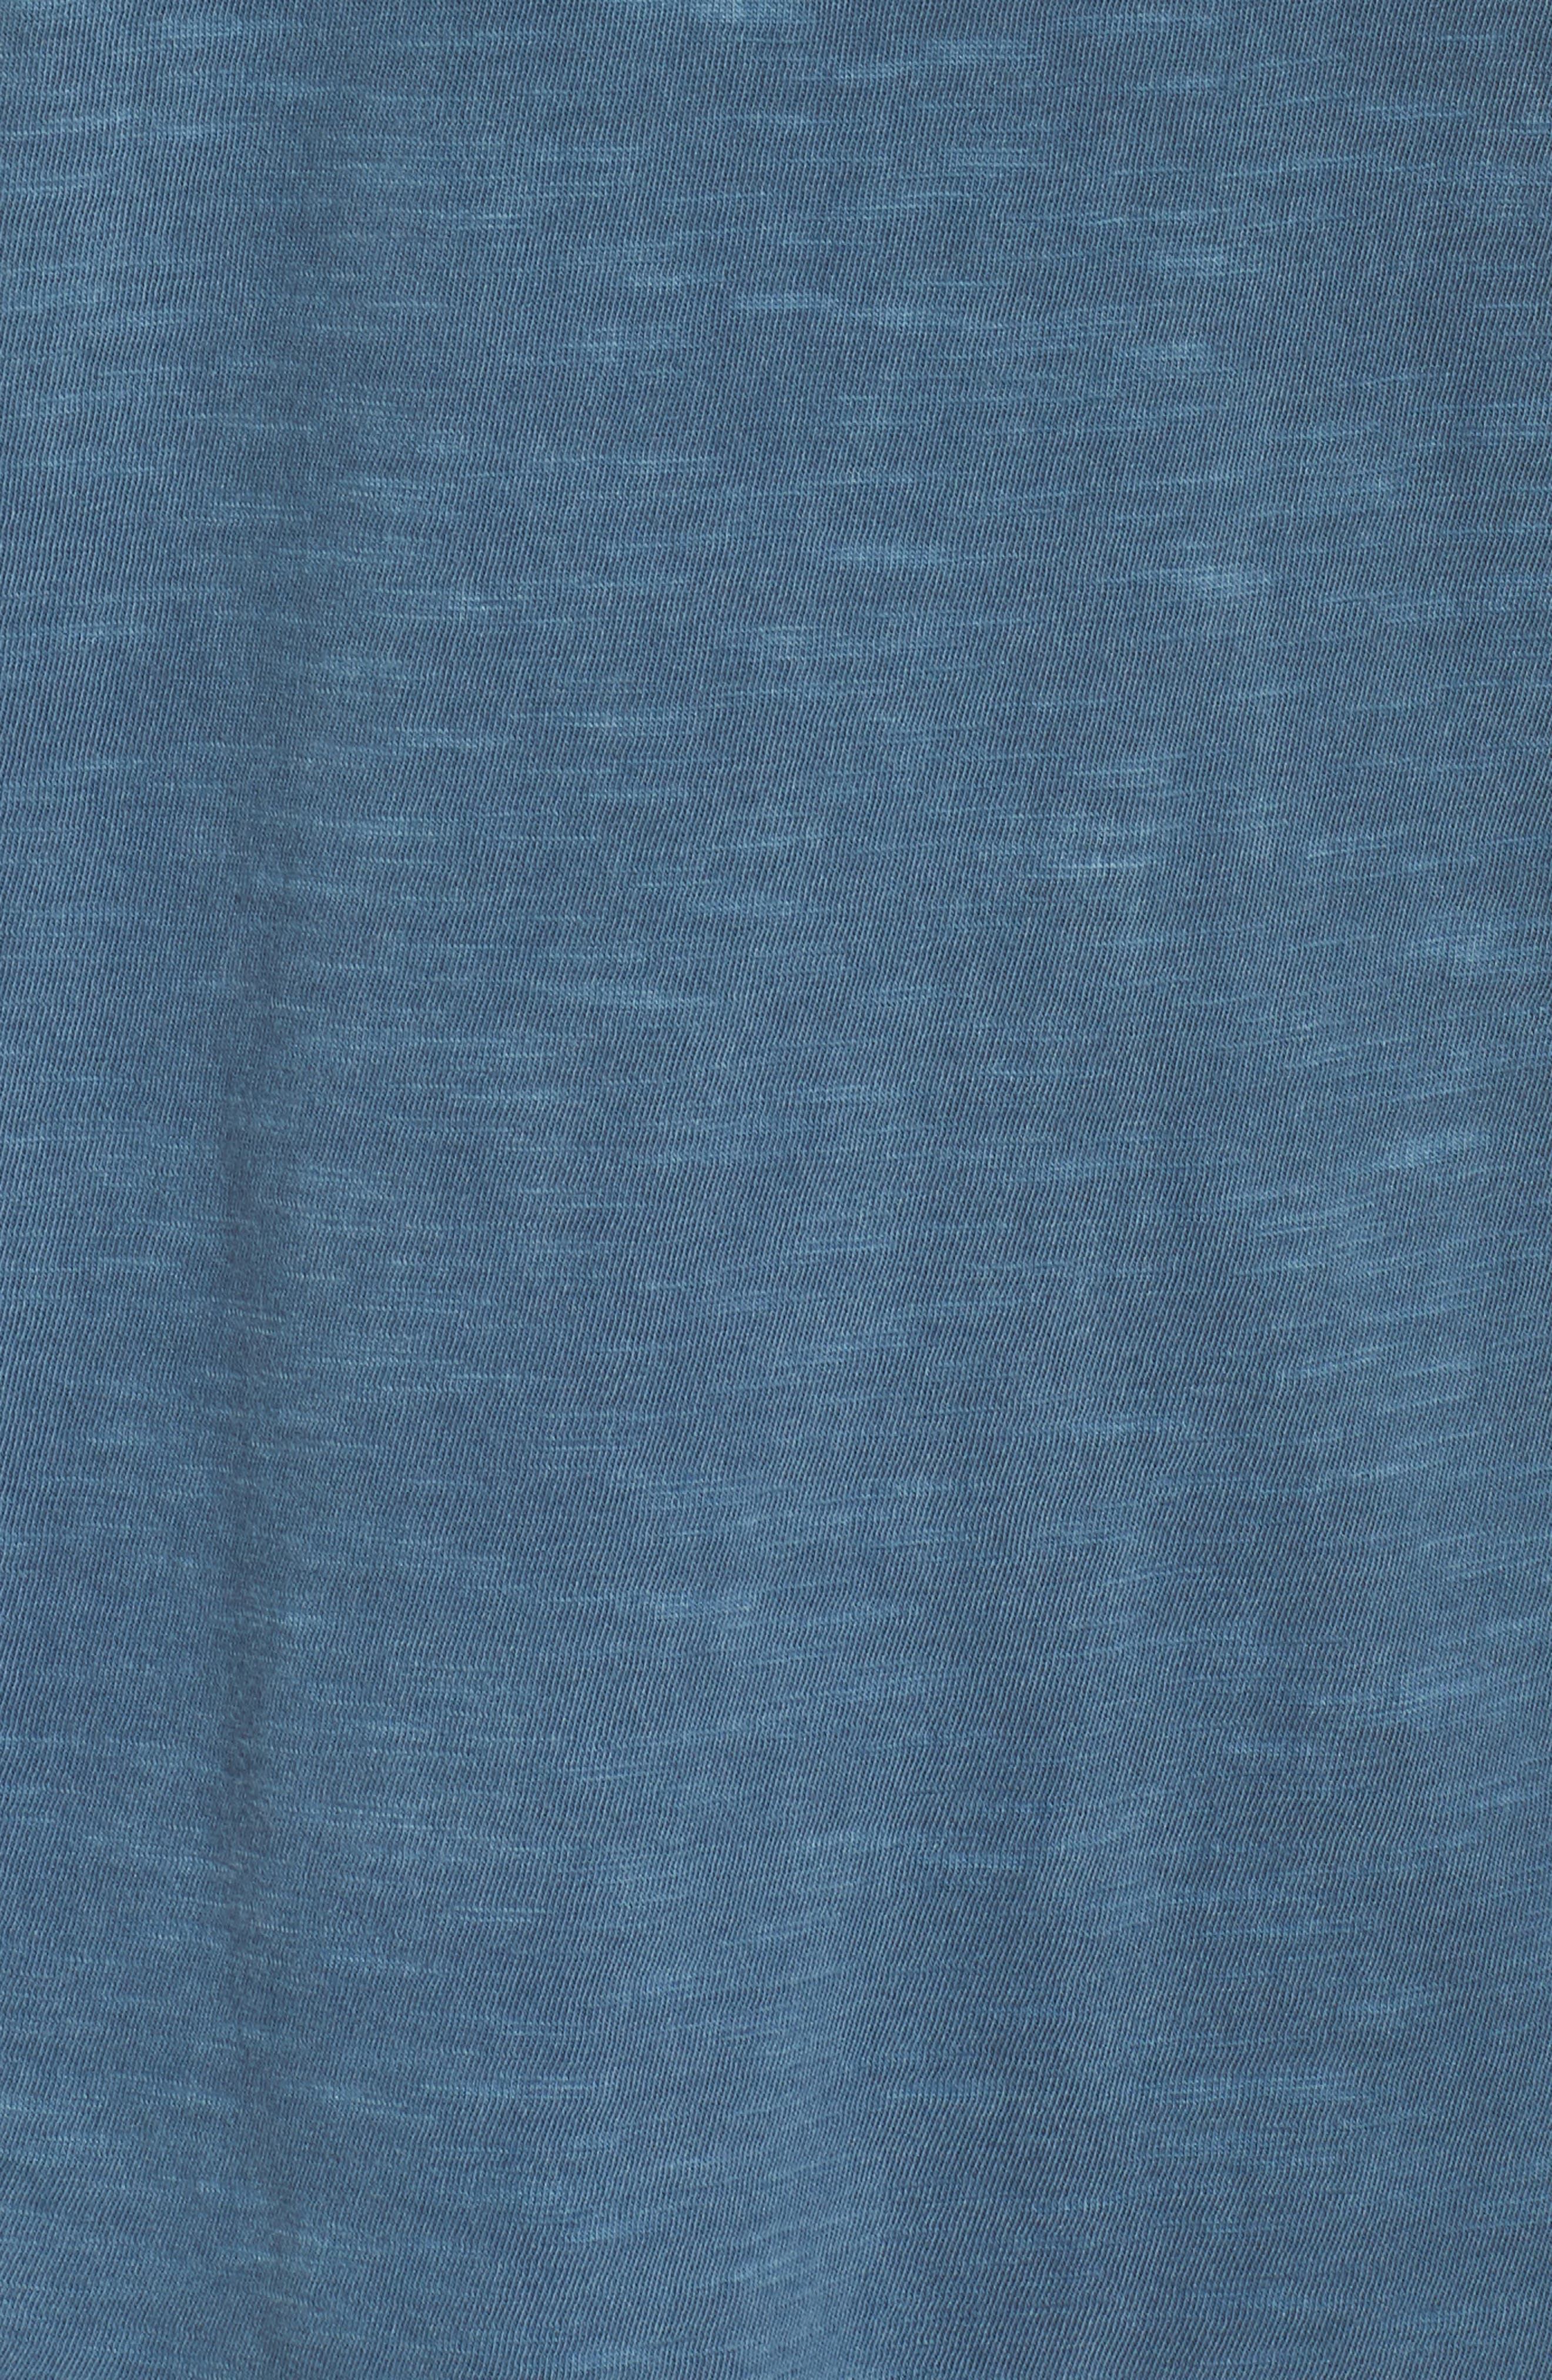 Inside Out Muscle Tee,                             Alternate thumbnail 5, color,                             MINERAL BLUE PIGMENT